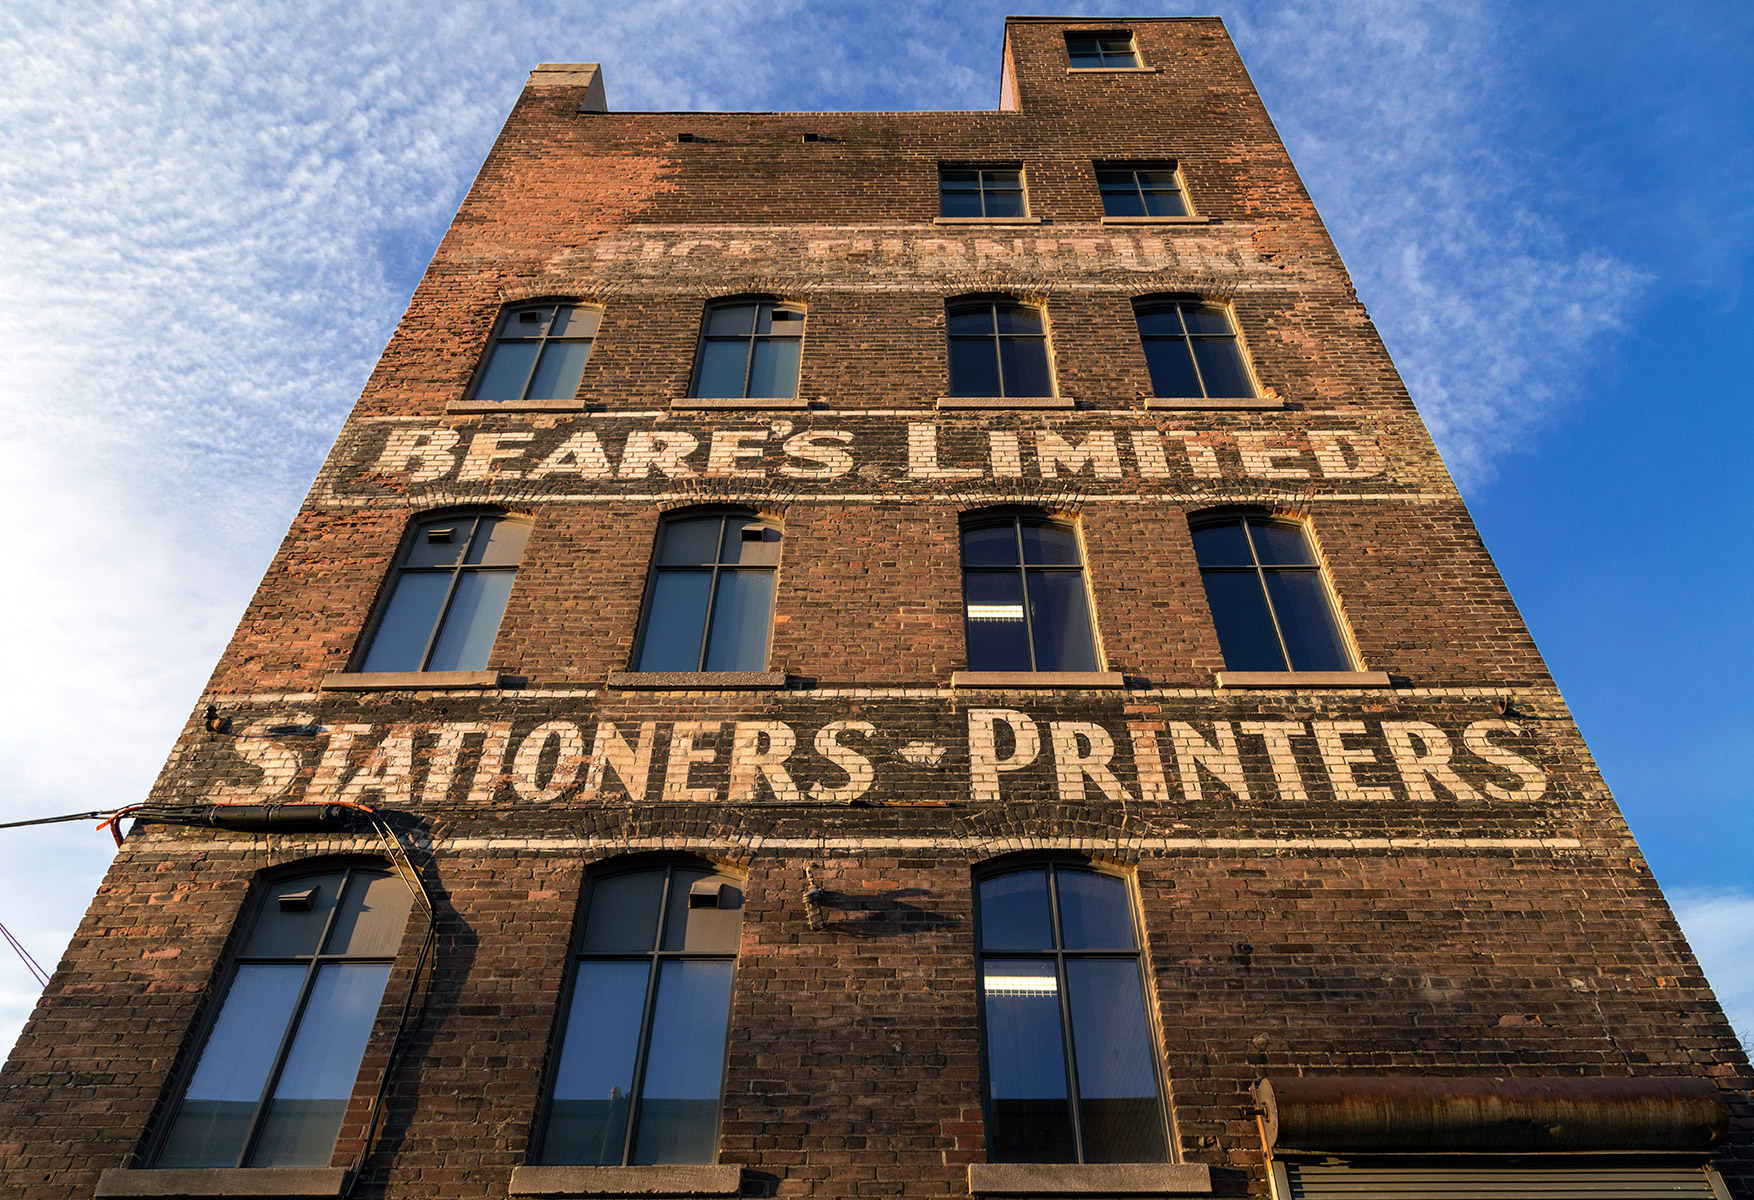 20160206. Beare's Limited, a five story brick and beam buildin